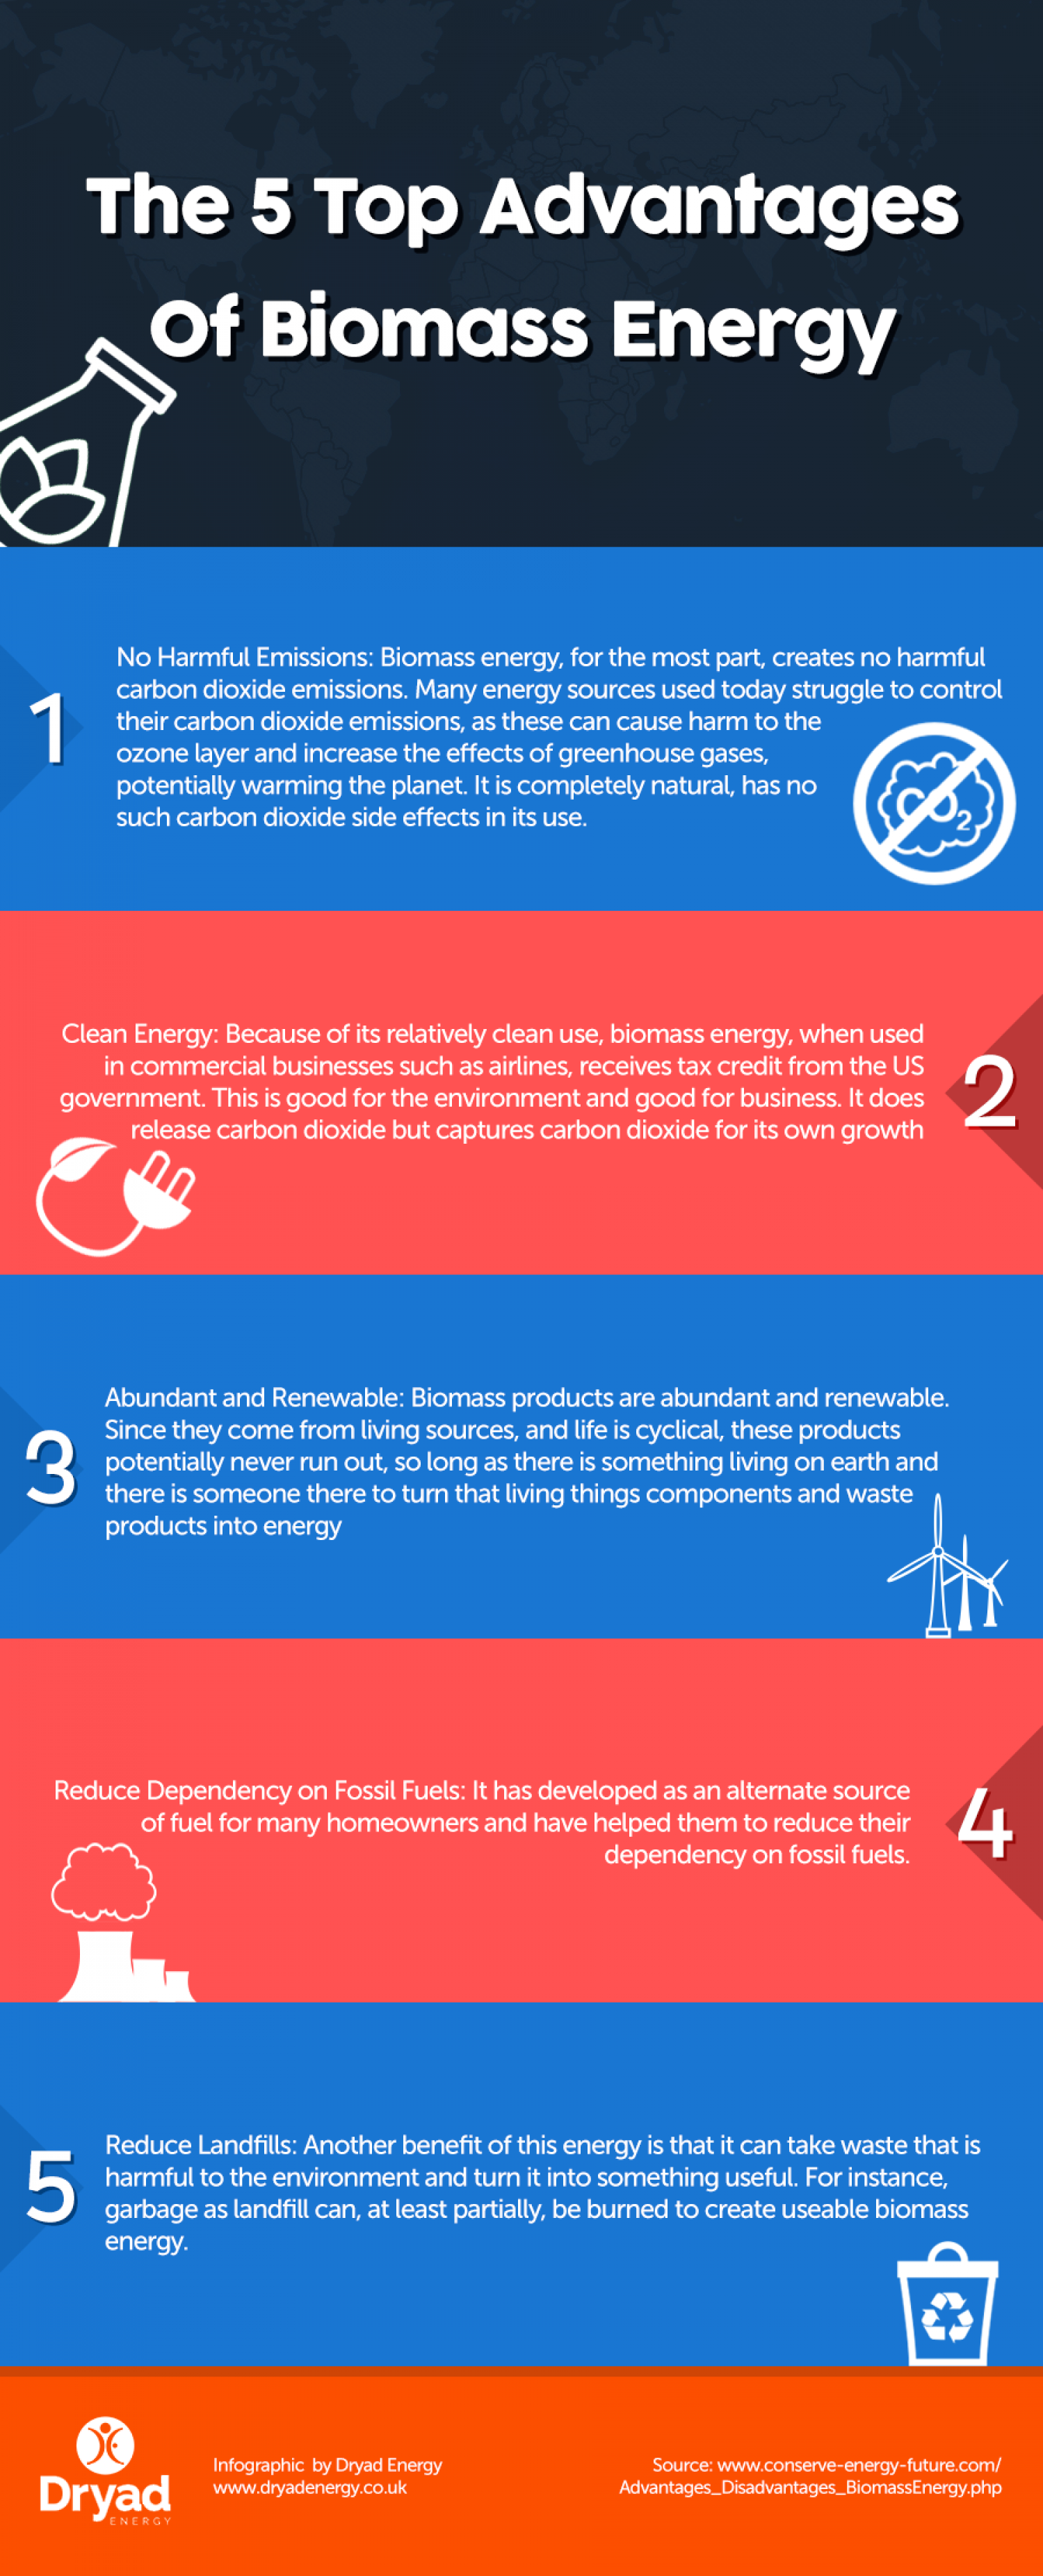 The 5 top advantages of biomass energy  Infographic